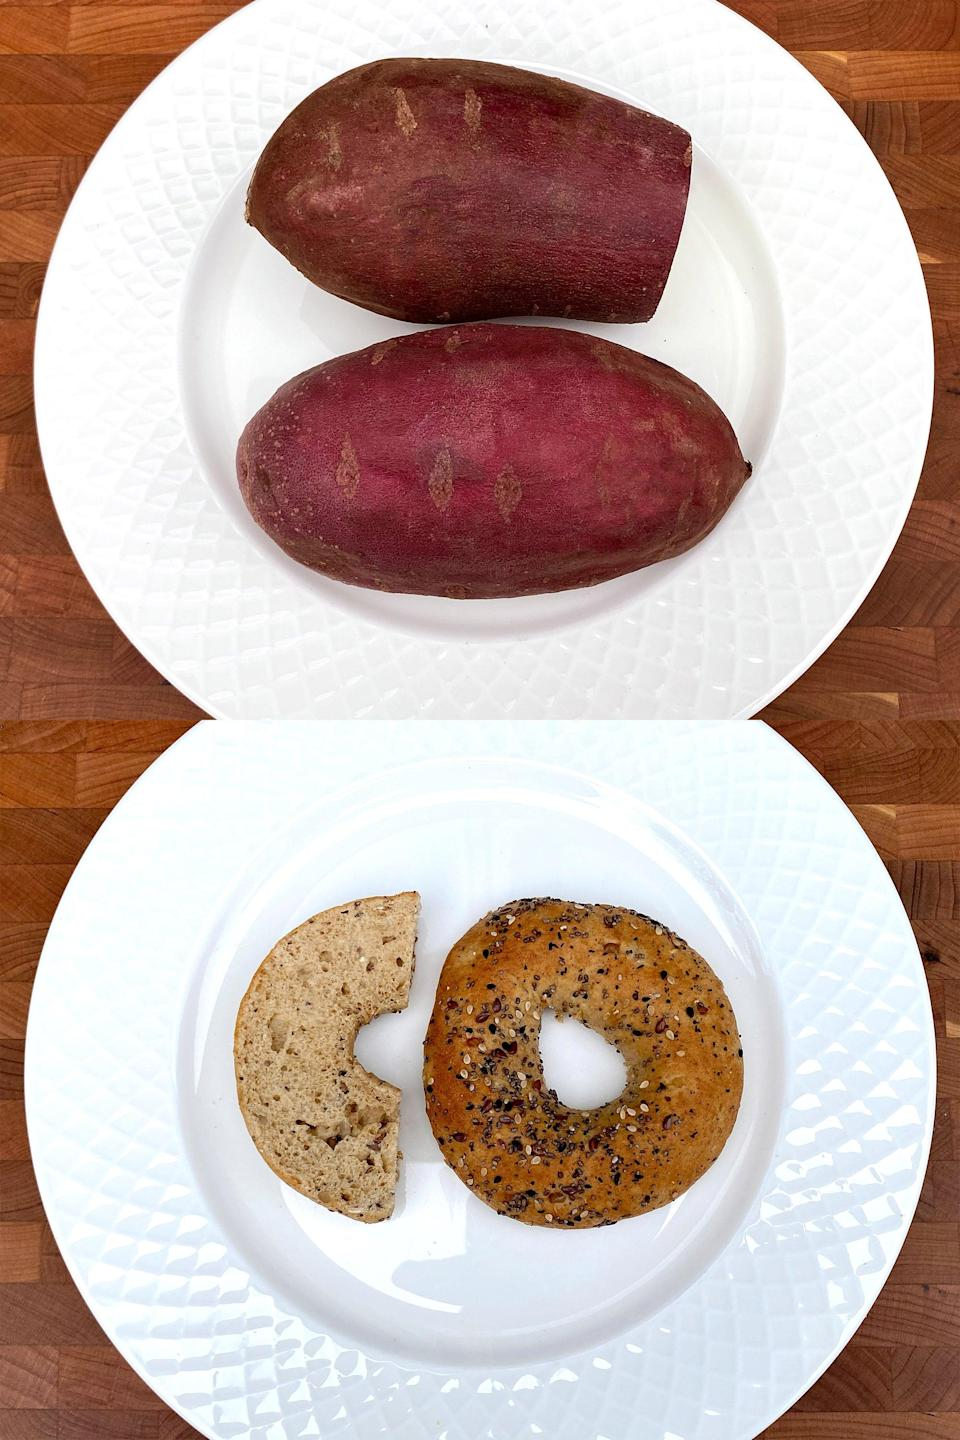 <p>For 200 calories, you can have almost two medium sweet potatoes or only three quarters of a bagel. I don't even think I could eat both those potatoes, but it's easy to eat a whole bagel, and that doesn't include the cream cheese, butter, or egg and cheese you might order to go inside it. See how eating foods low in calorie density allows you to eat more volume for fewer calories?</p>